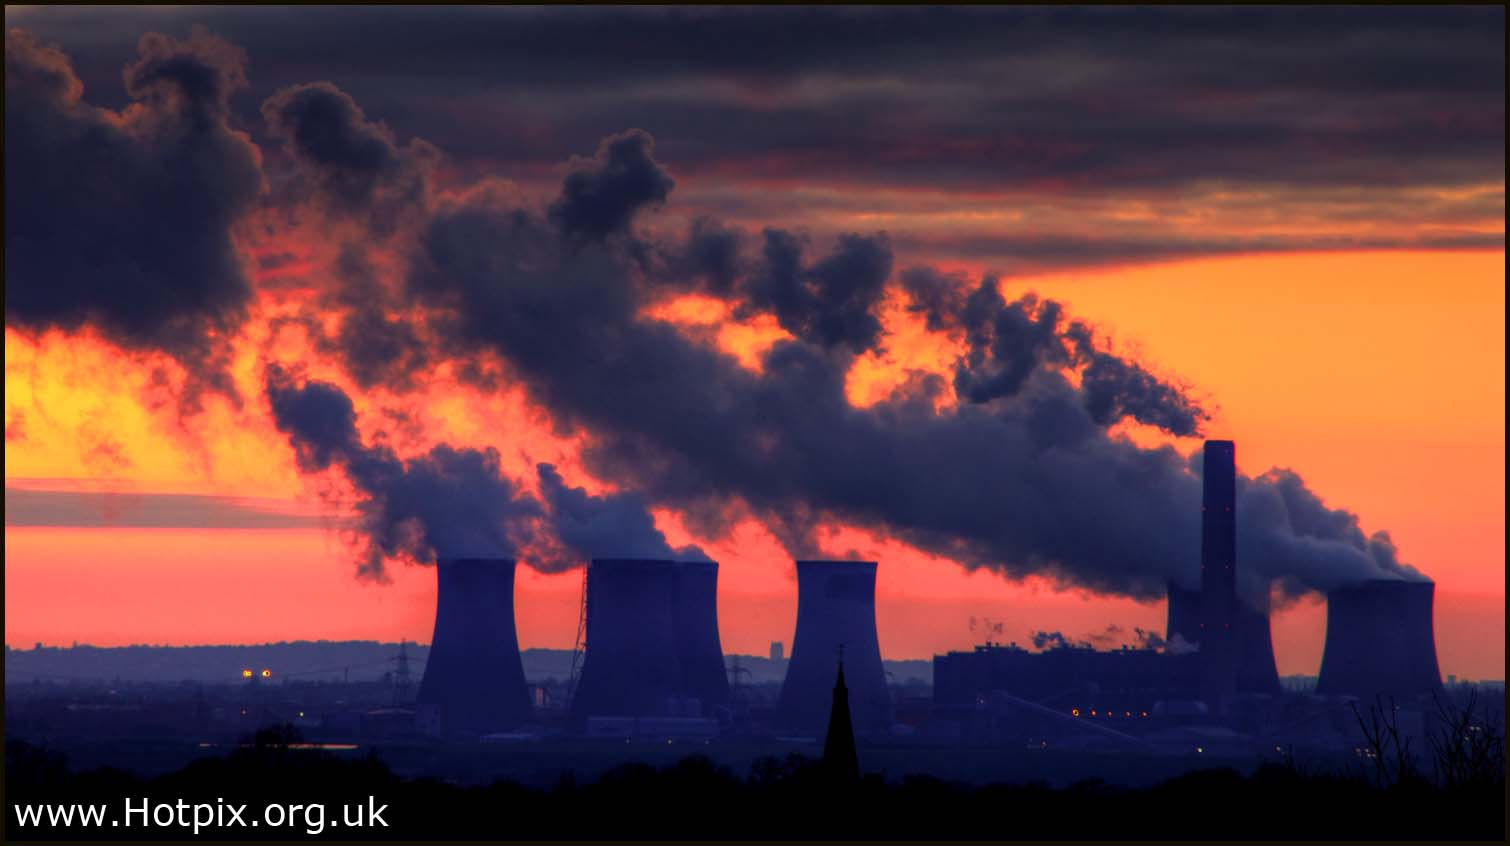 warrington,widnes,runcorn,mersey,river,merseyside,Liverpool,suns warrington,sunset,dusk,night,shot,power,station,cooling,towers,eight,8,view,from,pewterspear,365project,tonysmith,hotpix,HDR,rich,color,colores,deep,industrial,industry,light,stream,lightstream